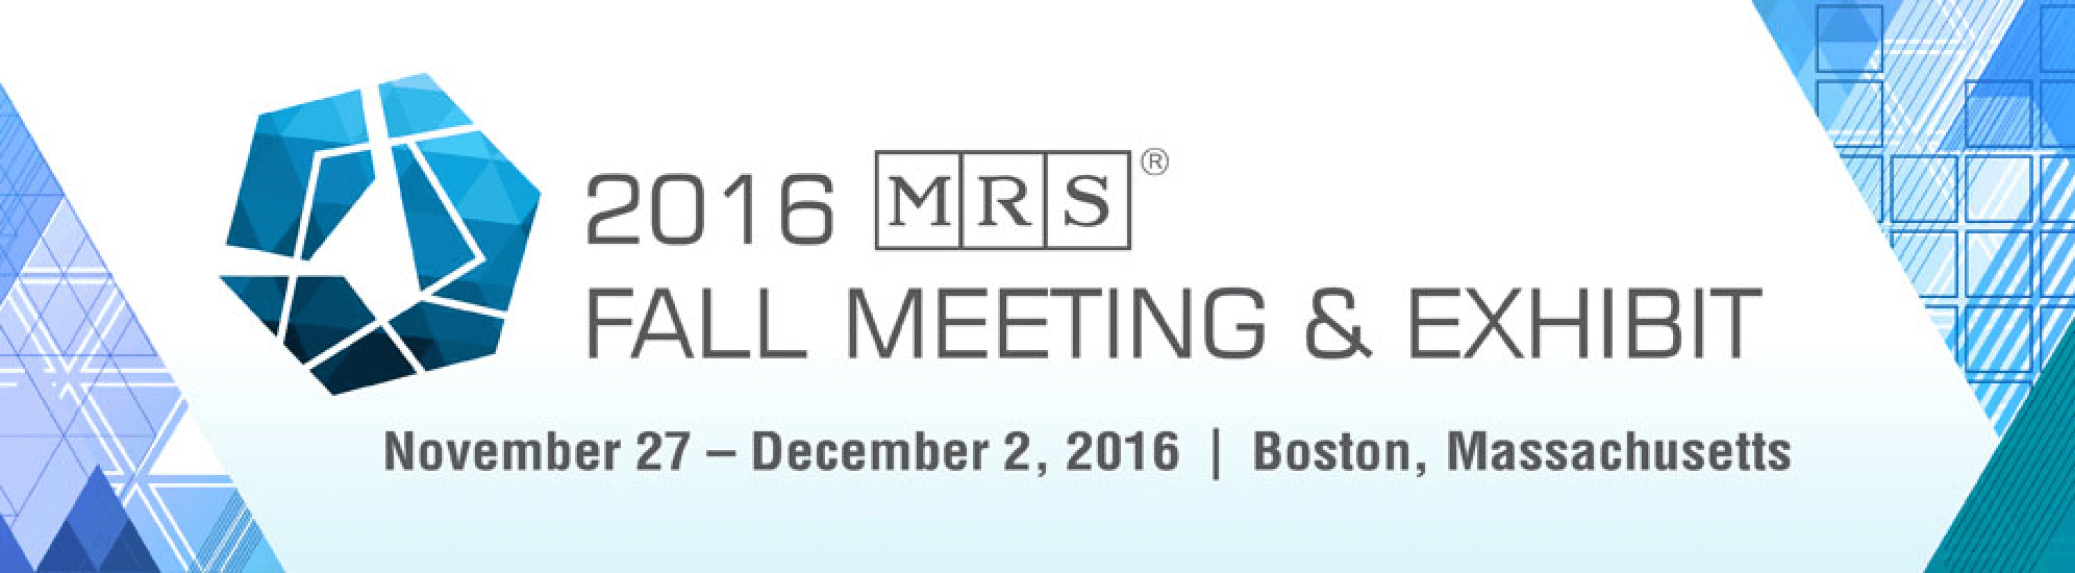 Join us at the 2016 MRS Fall Meeting & Exhibit!